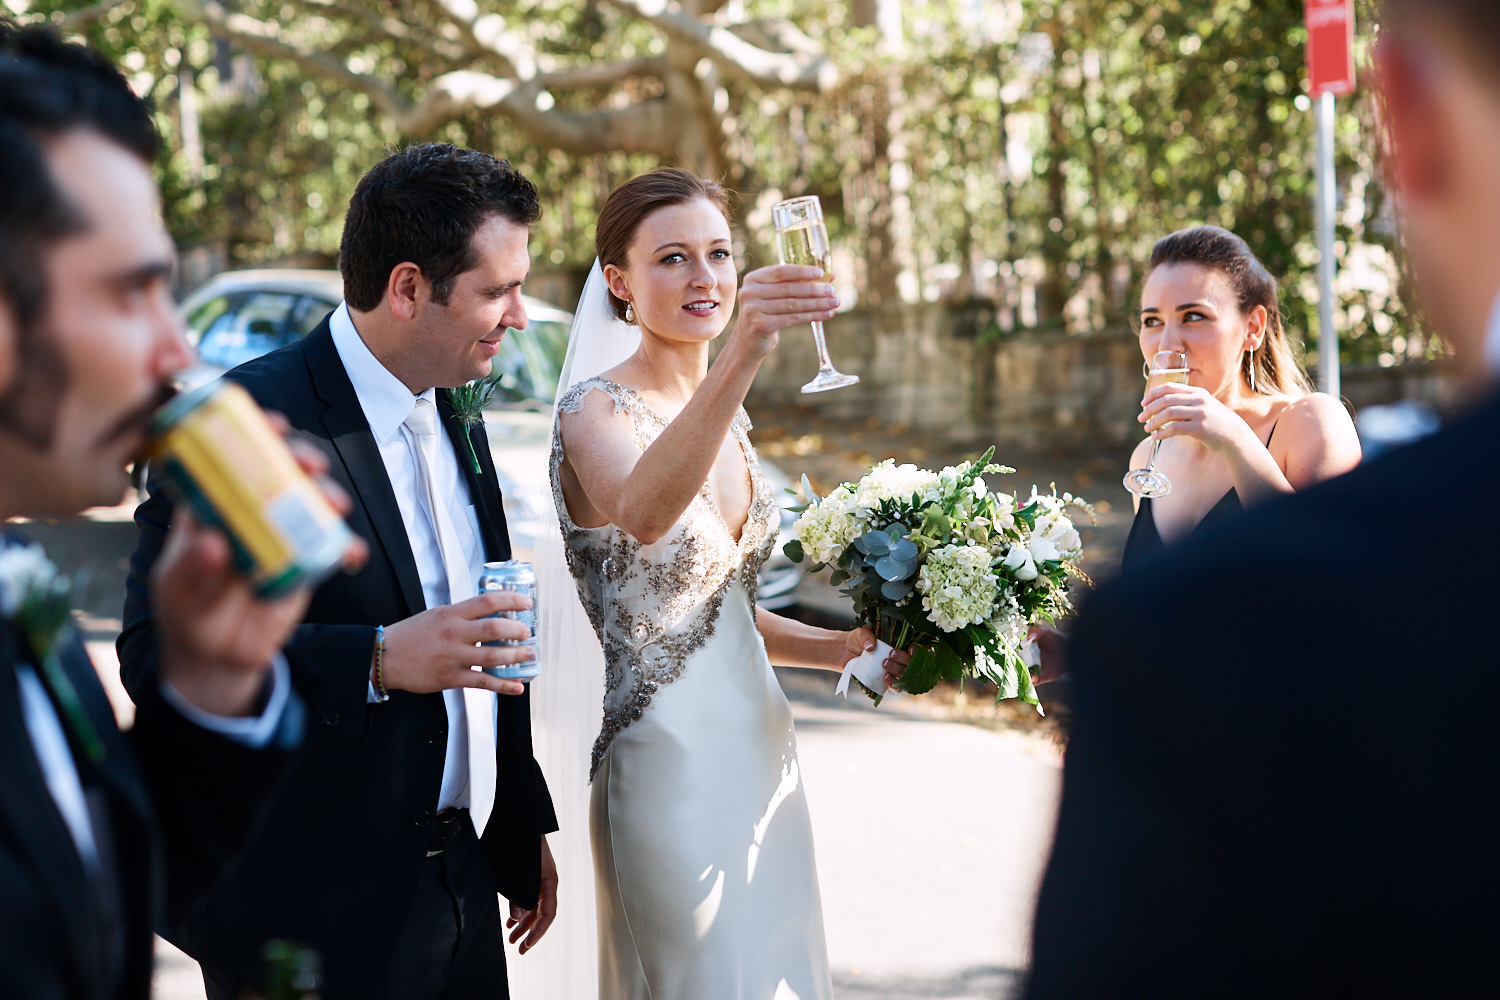 Bride raising a glass of champagne to bridal party